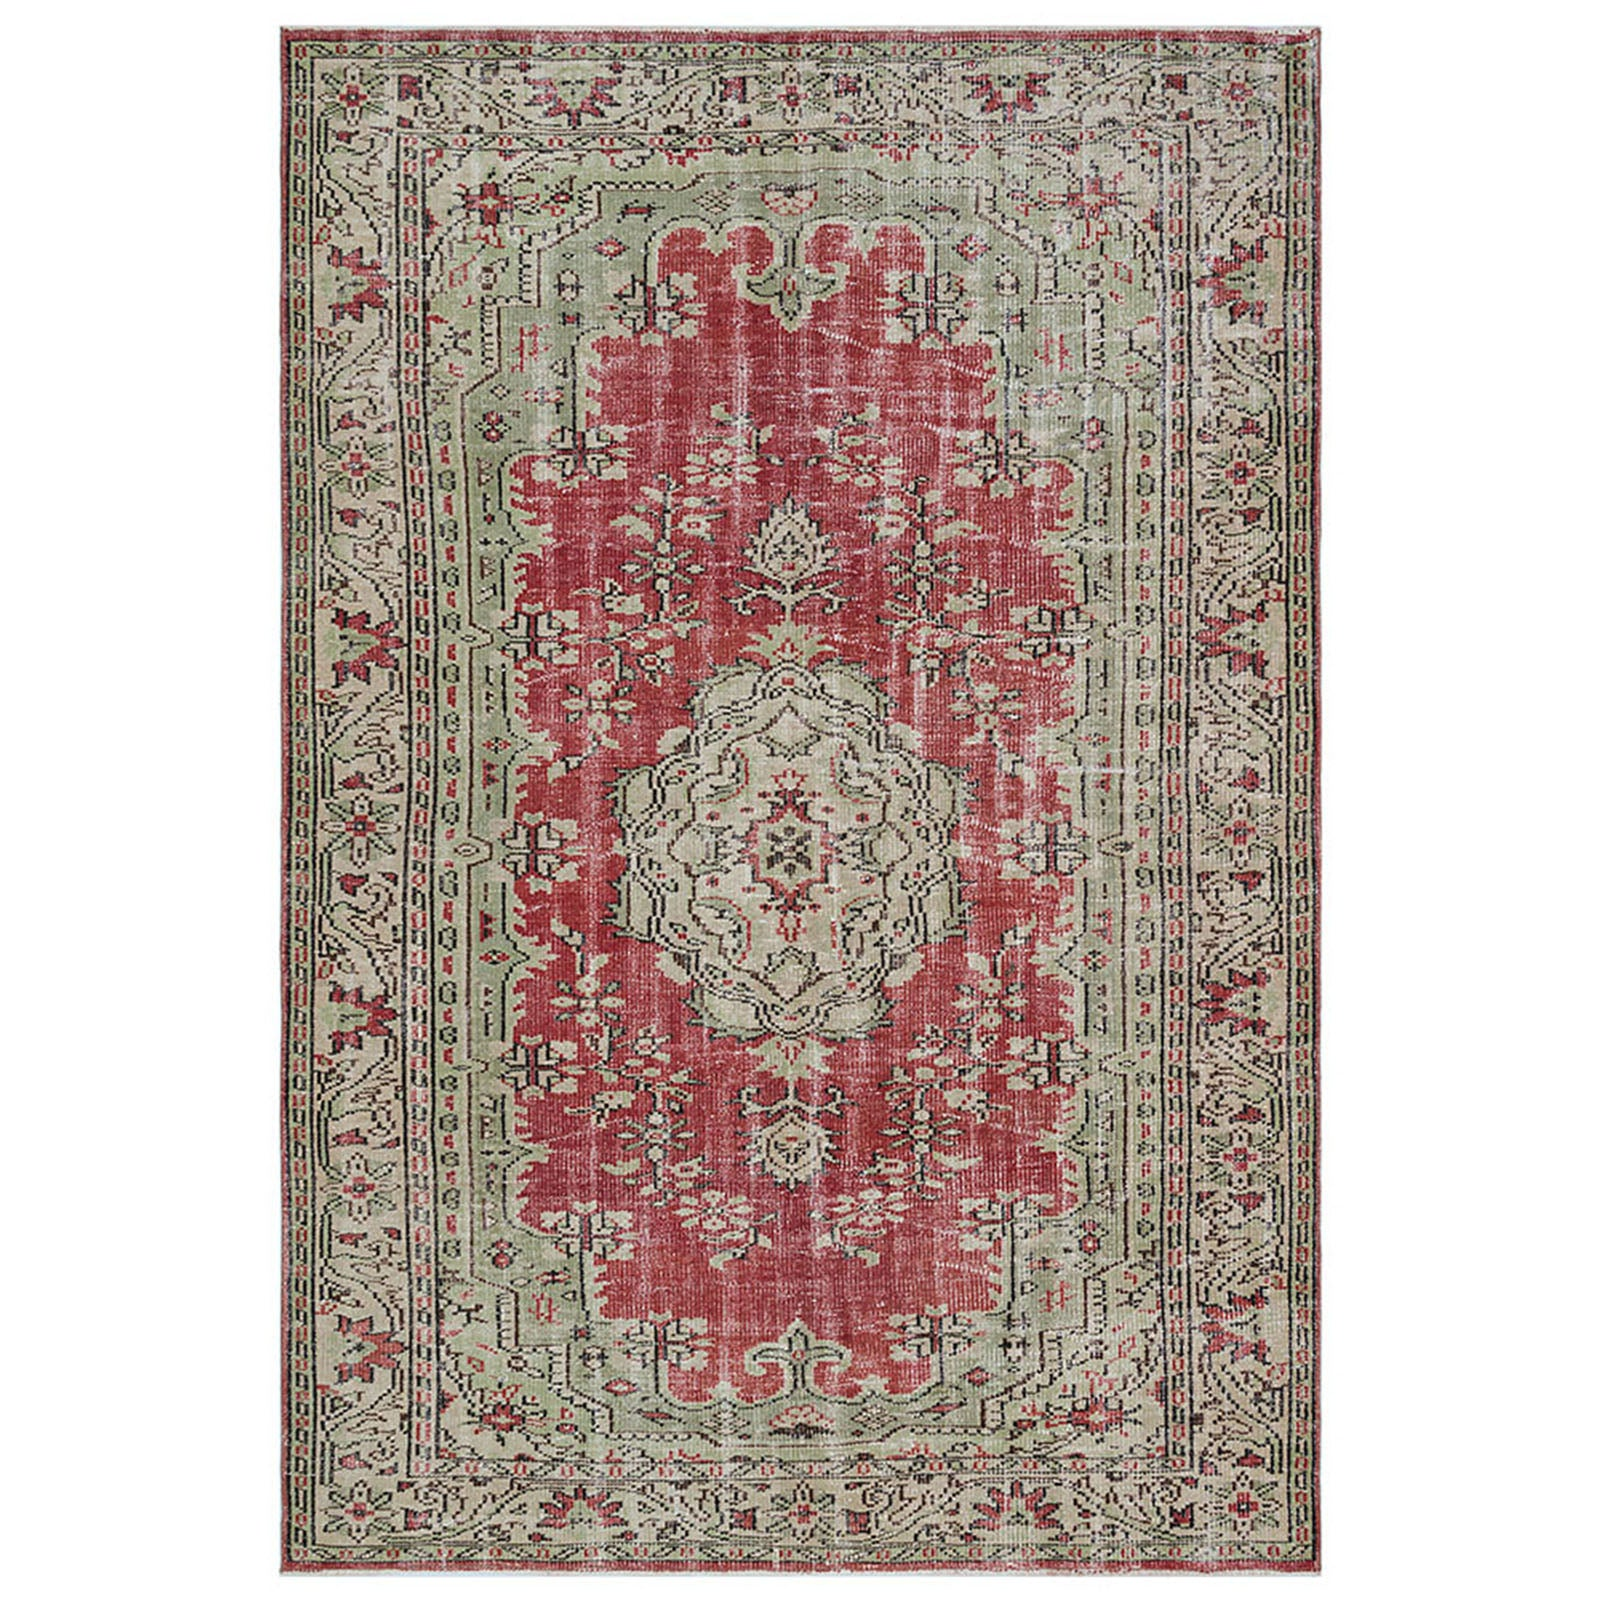 Hali 179X260  CM Bursa Handmade over dyed rug  2033 -  179*260 سجاده بورصة صناعة يدوية على بساط مصبوغ - Shop Online Furniture and Home Decor Store in Dubai, UAE at ebarza